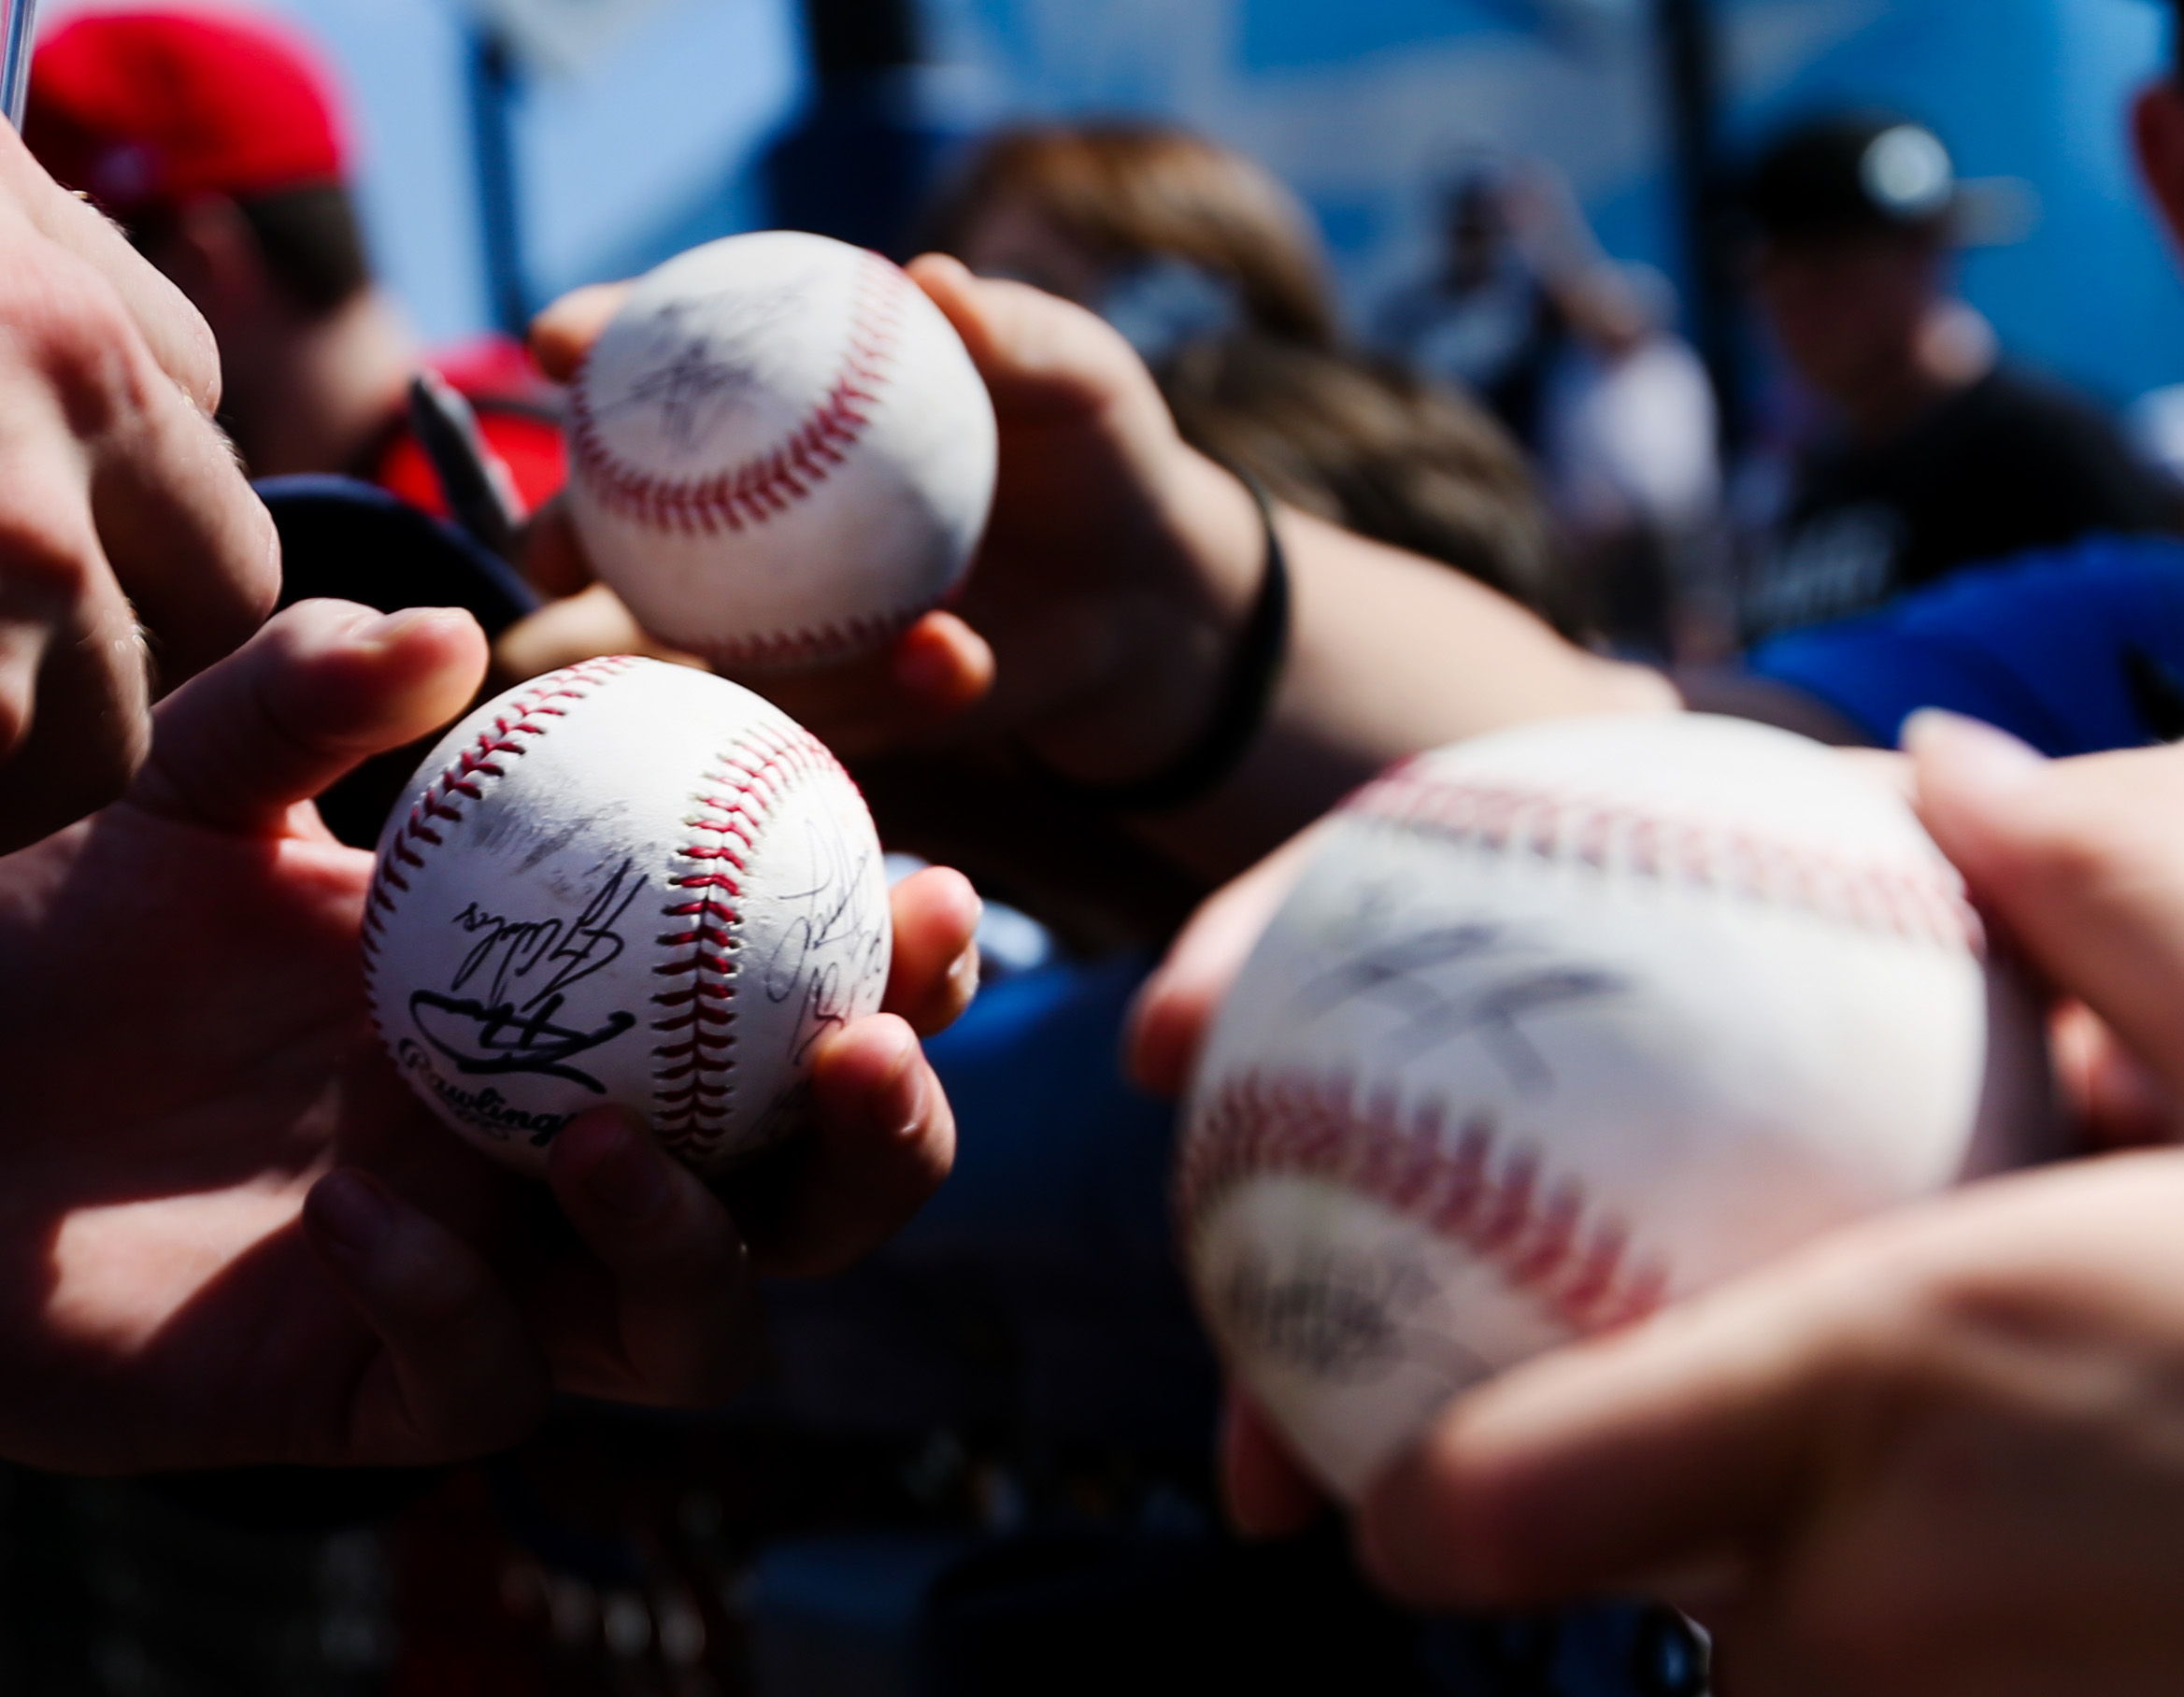 Tampa Bay Rays relief pitcher Ryne Stanek (55) signs baseballs for fans before the game between the Philadelphia Phillies and the Tampa Bay Rays at Charlotte Sports Park in Port Charlotte, Fla. on Friday, Feb. 22, 2019.